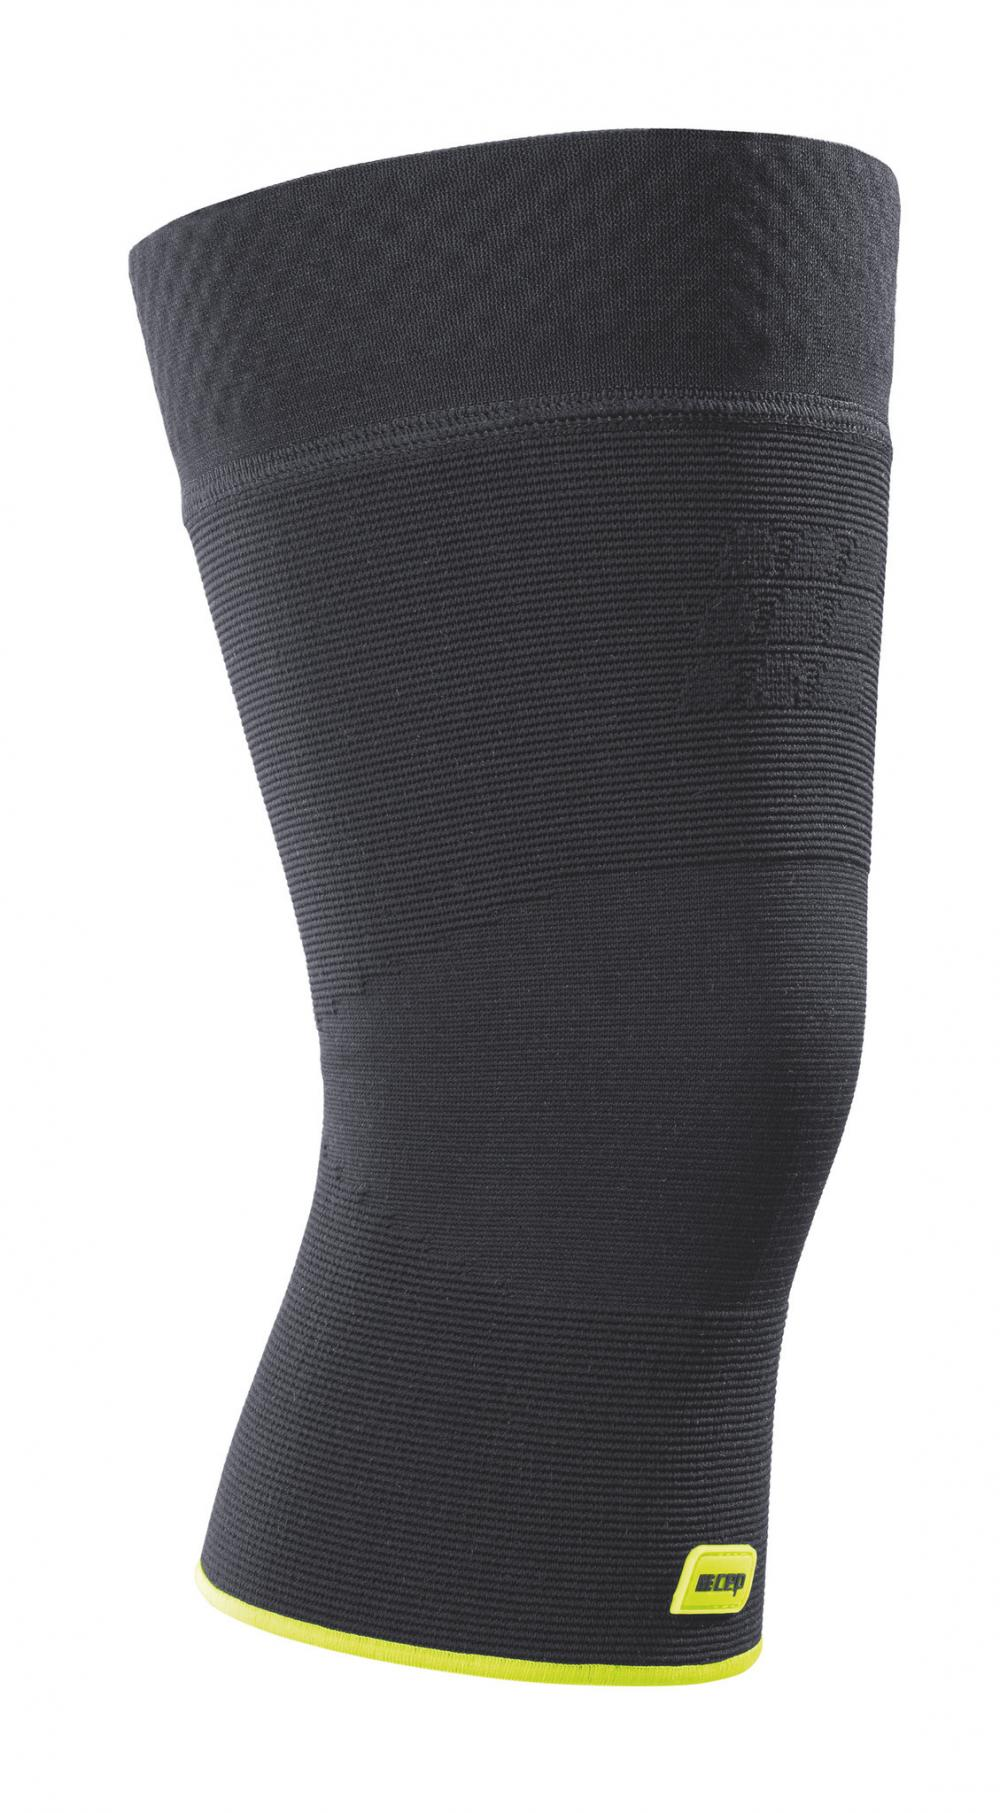 CEP Ortho + Compression Knee Sleeve, Size 4